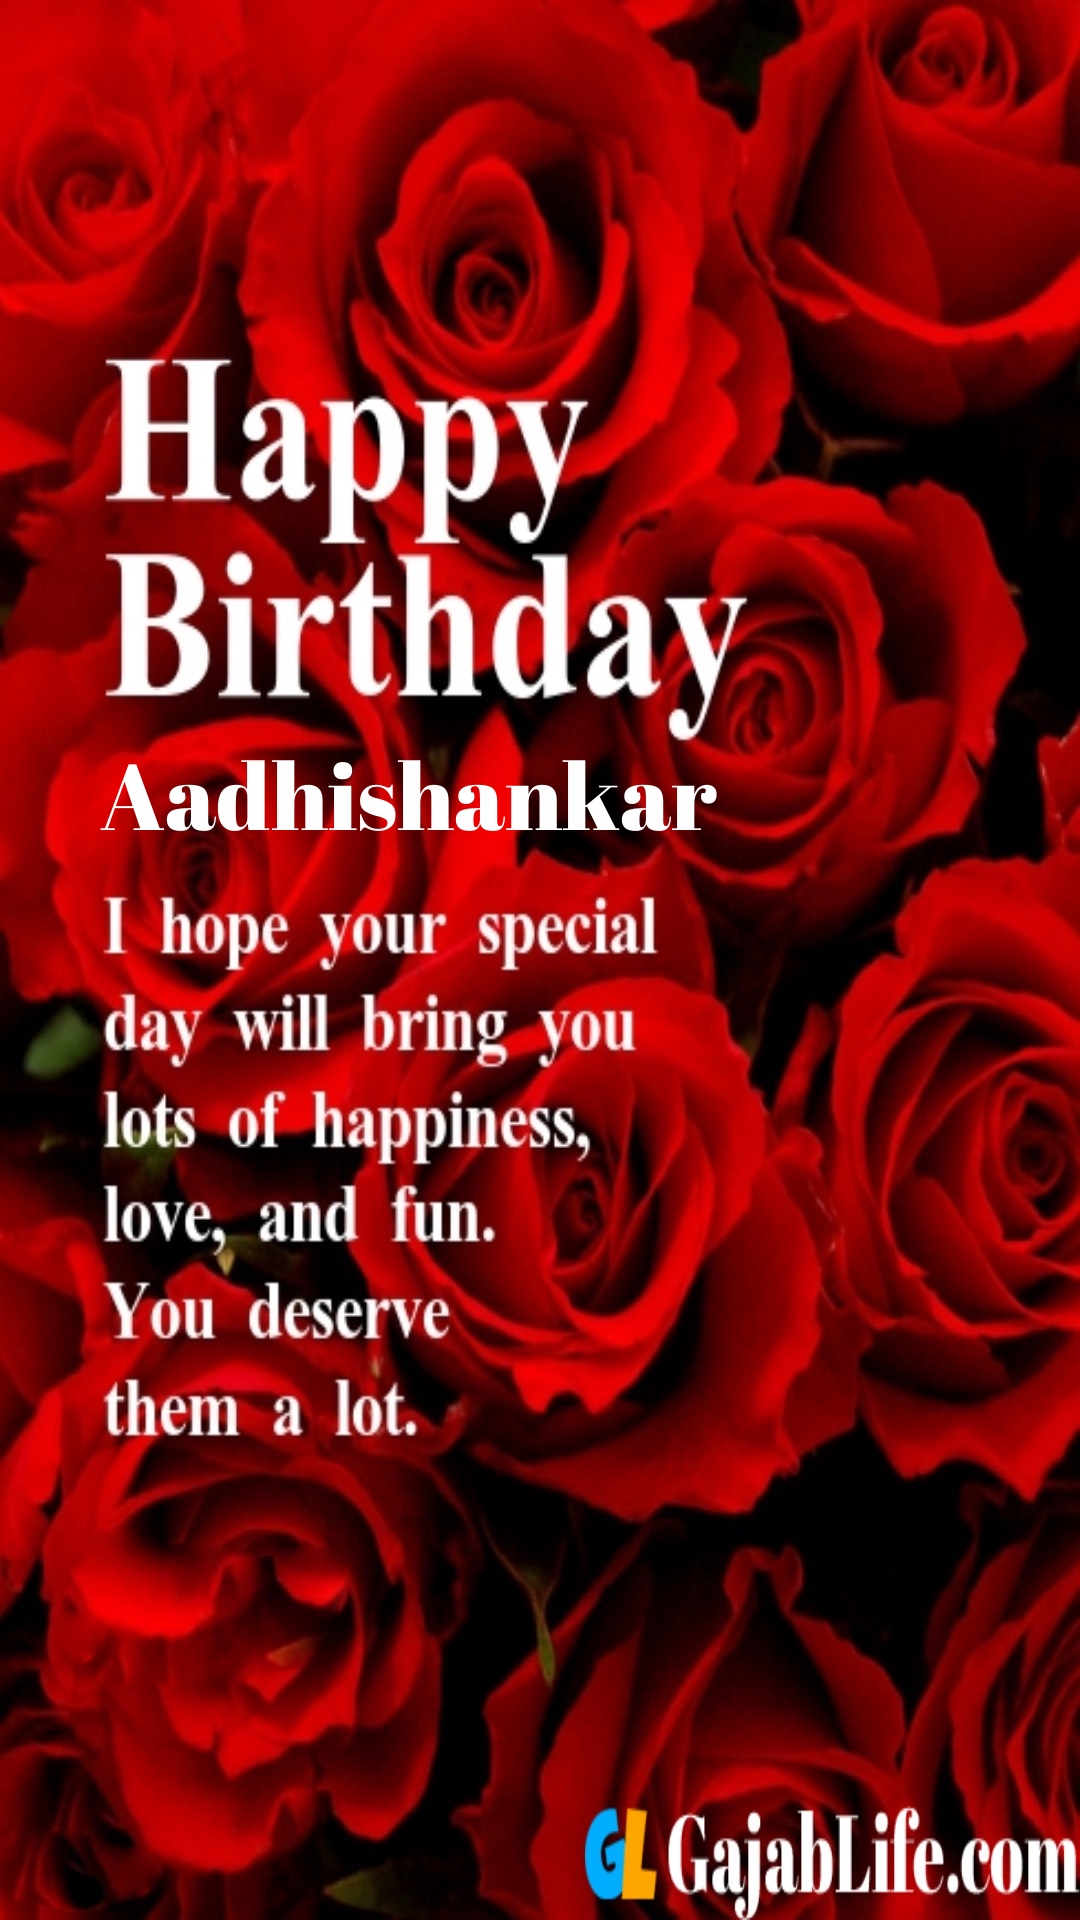 Aadhishankar birthday greeting card with rose & love